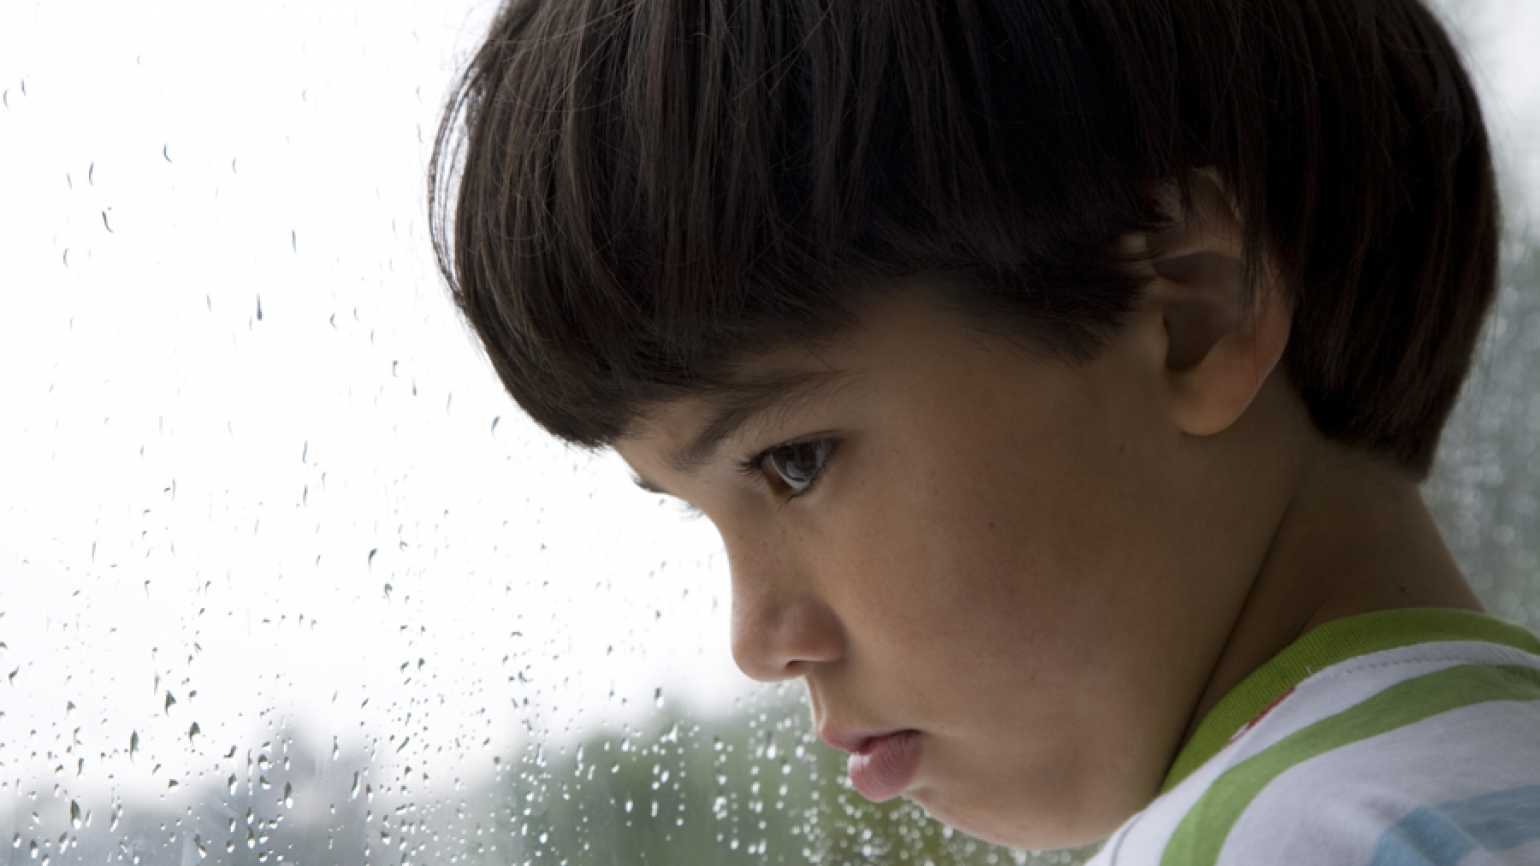 childhood domestic violence: how to heal   Guideposts